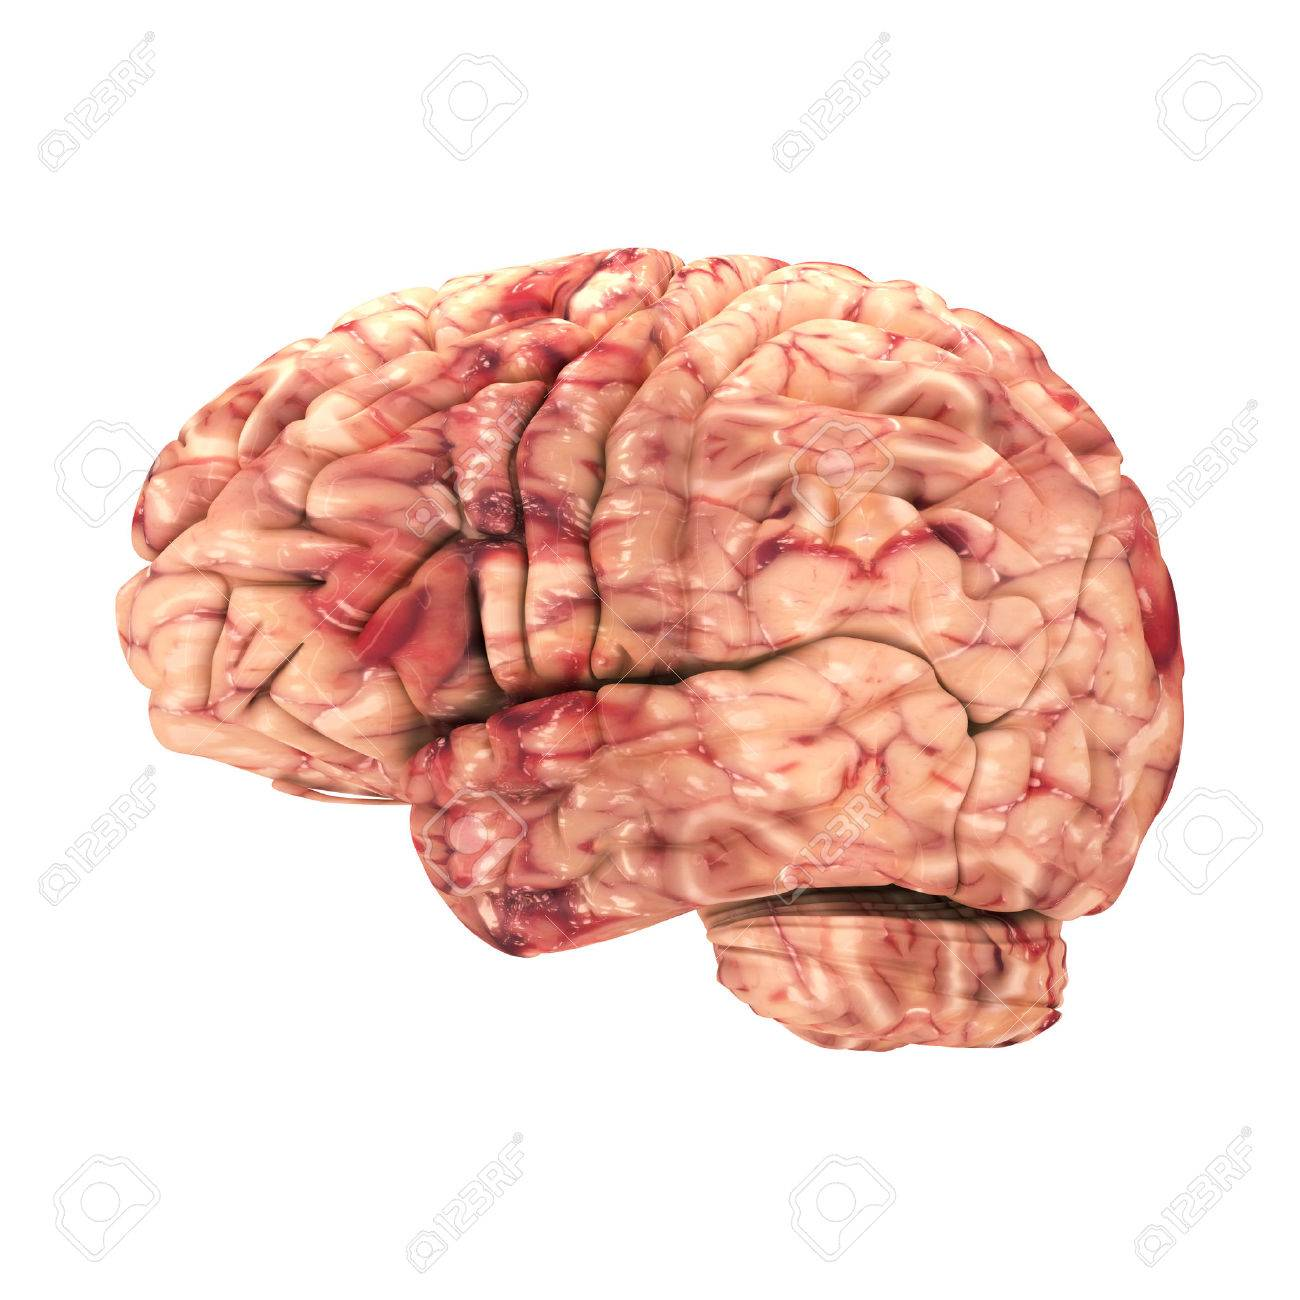 Anatomy Brain - Side View Isolated On White Stock Photo, Picture And ...